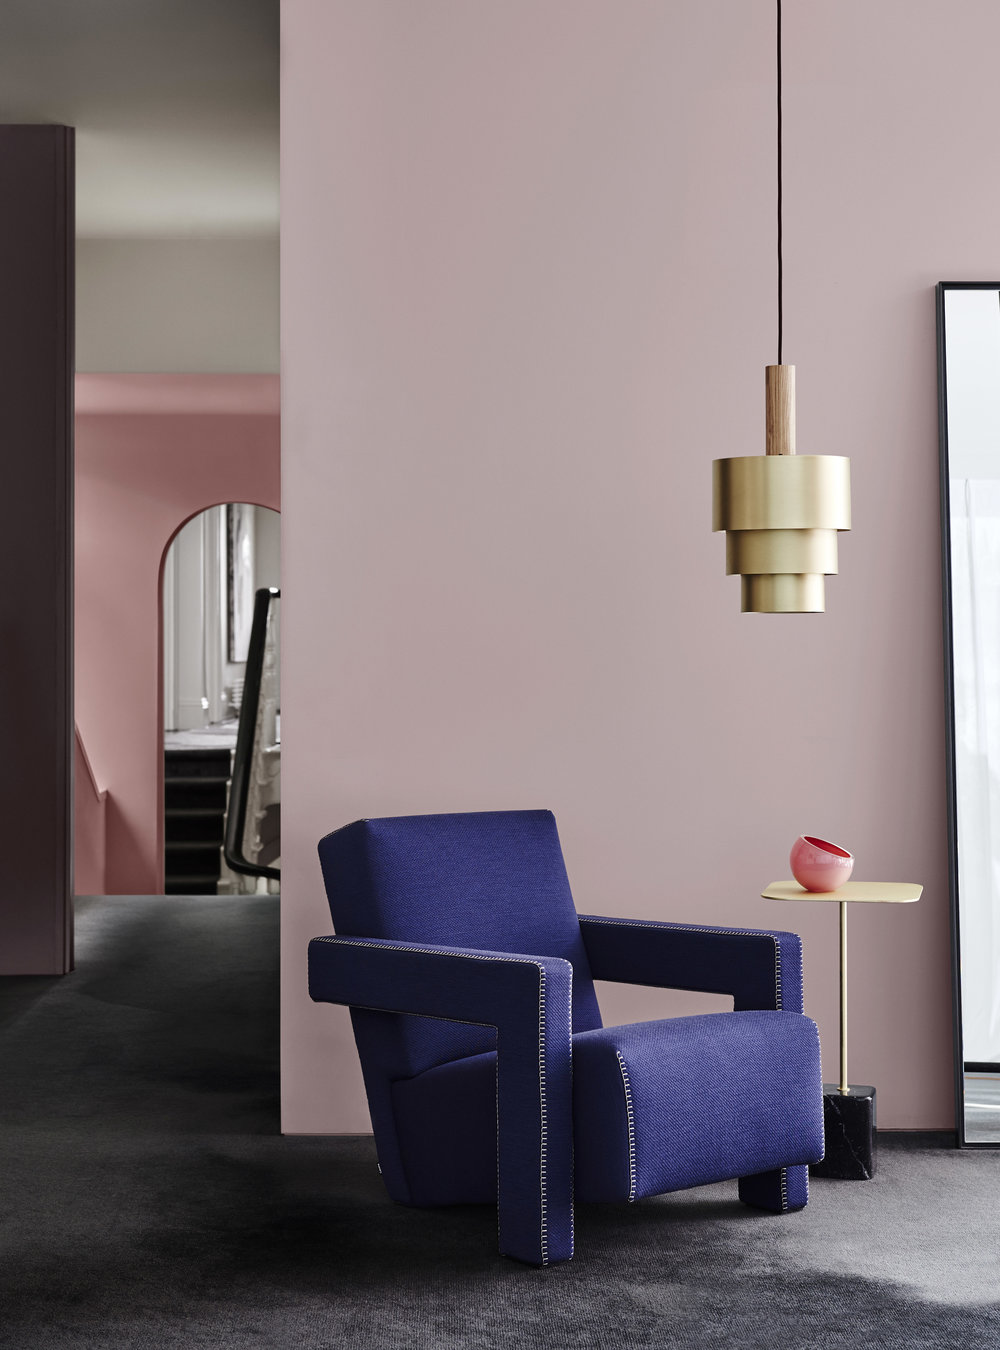 Dulux Colour Trends 2018  – Reflect Palette. Front wall in Dulux Smokey Quartz, Left wall in Dulux Bruised Burgundy and rear wall Dulux Terra Rose